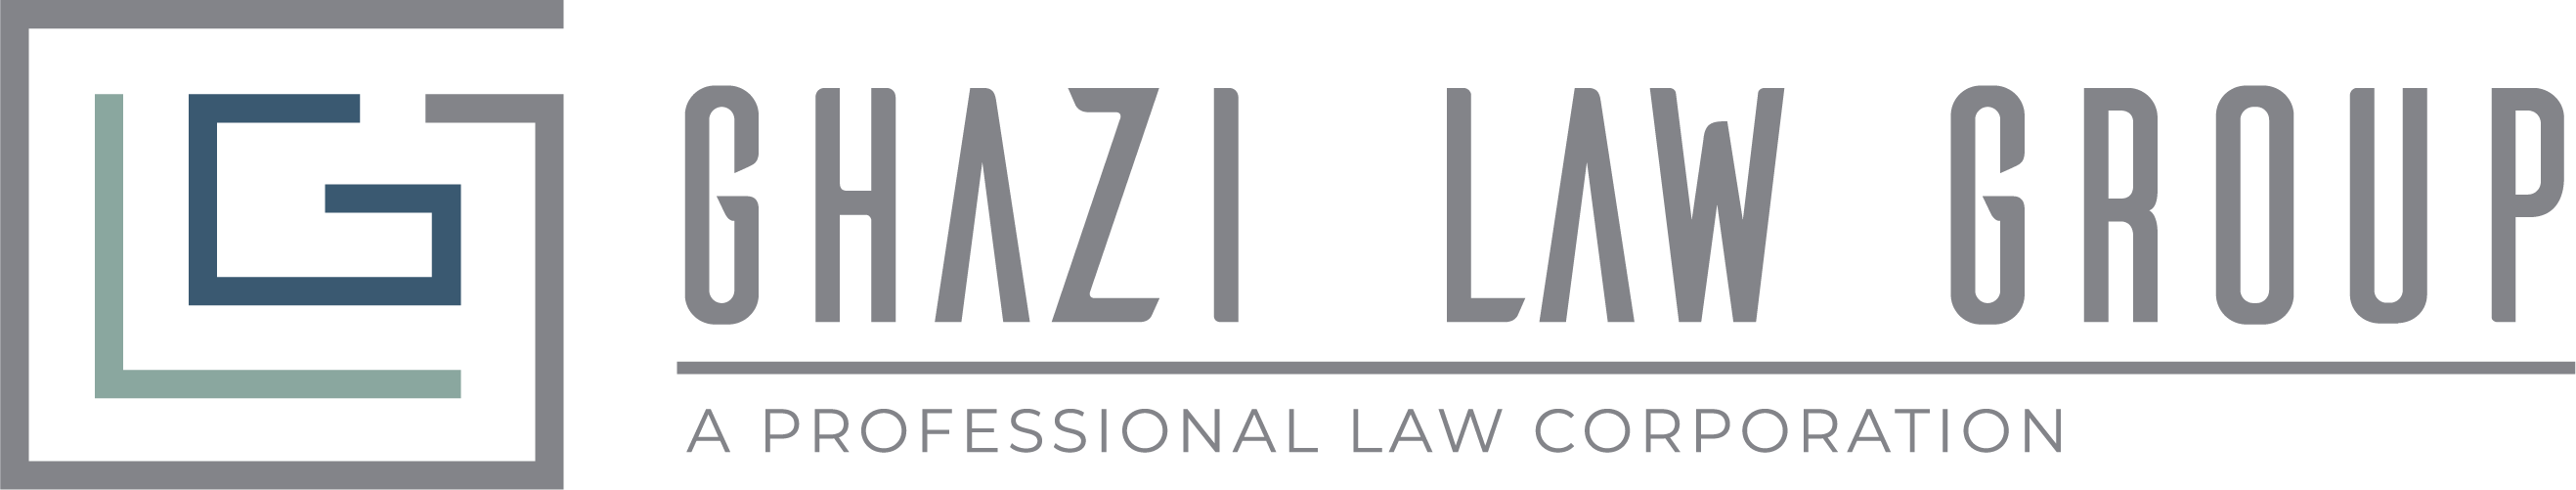 Highly-Rated Immigration Attorney in Sherman Oaks, CA, Ghazi Law Group, APLC, Now Handling Family Law Cases